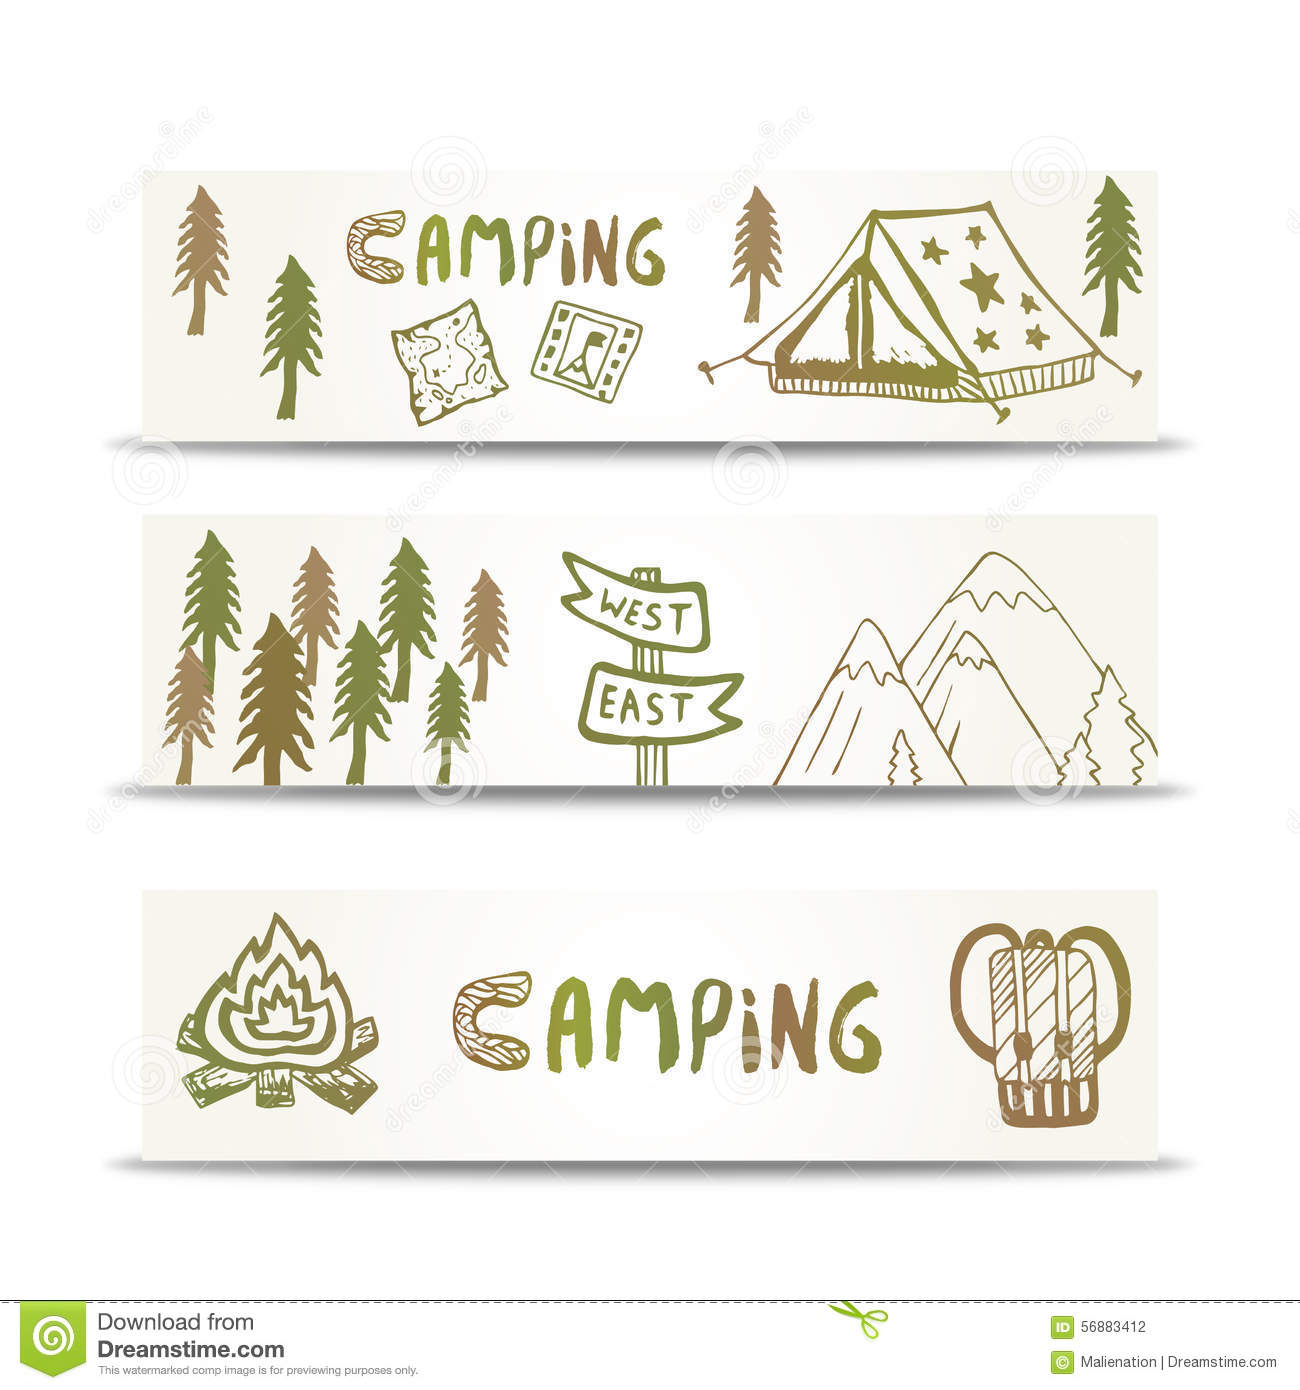 Camping banners horizontal set with mountain and tent. Hand drawn elements on design template.